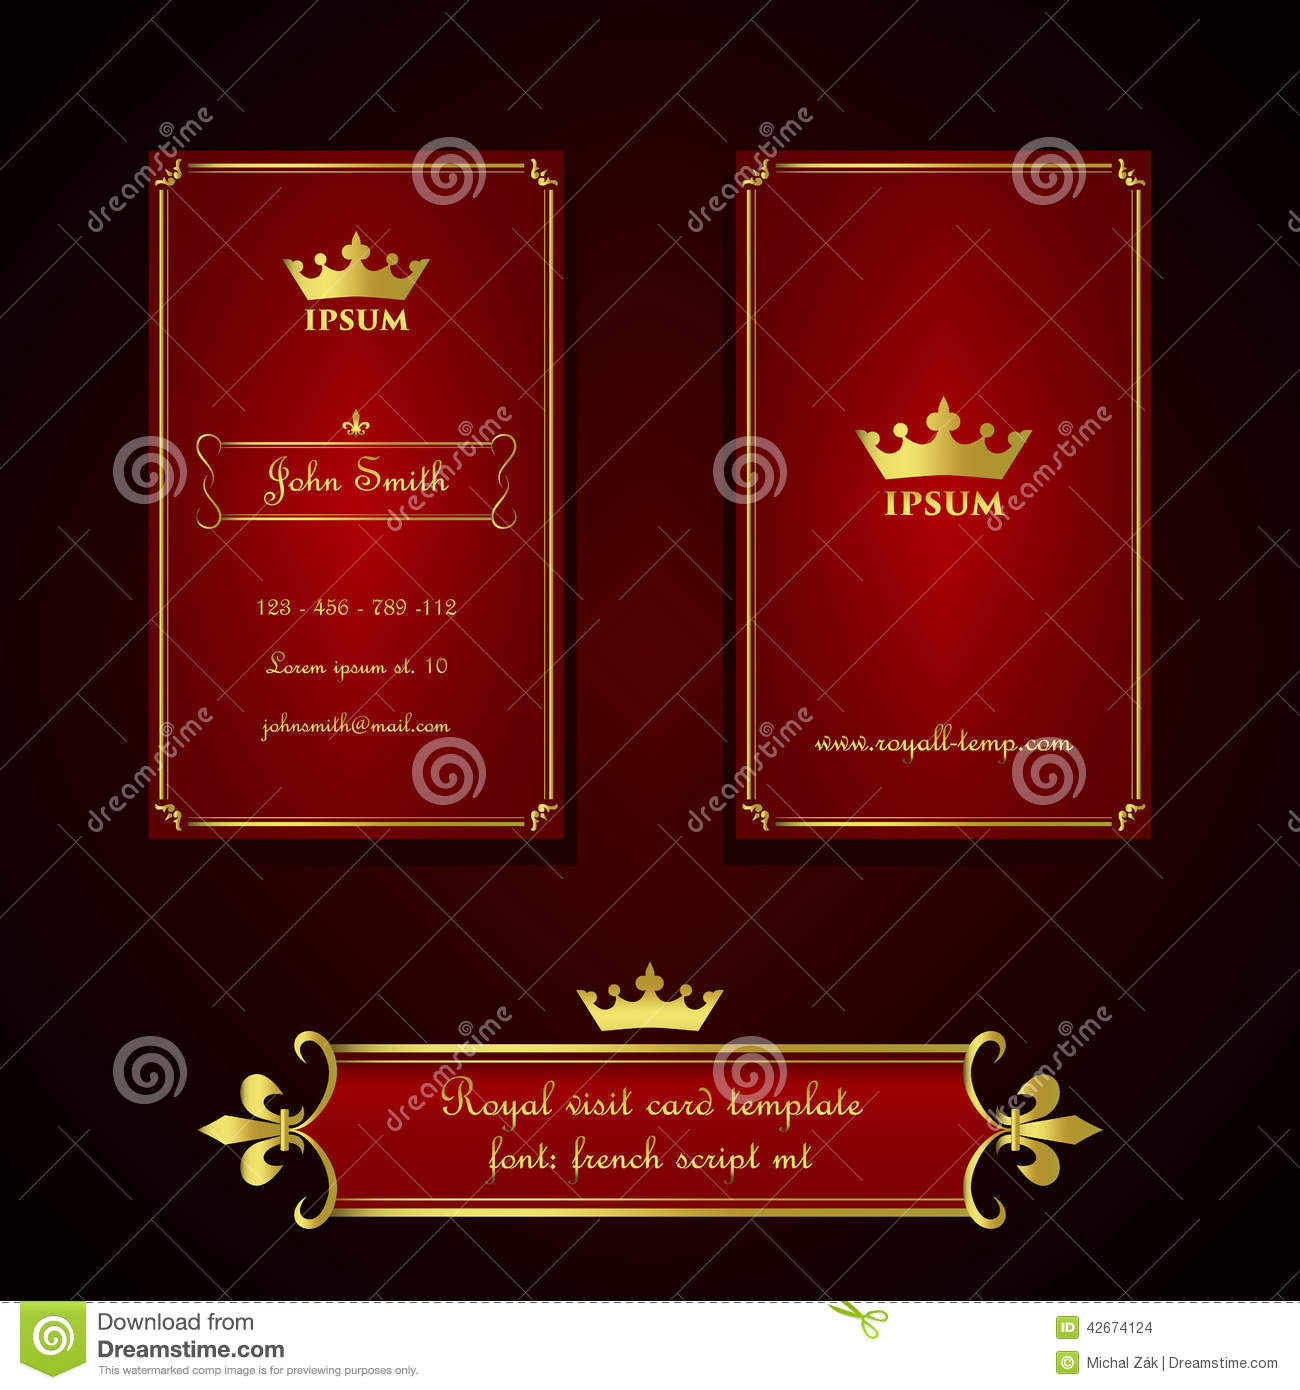 Fleur de lis business cards gallery free business cards fleur de lis card holder magicingreecefo business card template in royal red and gold style stock vector royalty free vector download business magicingreecefo Gallery